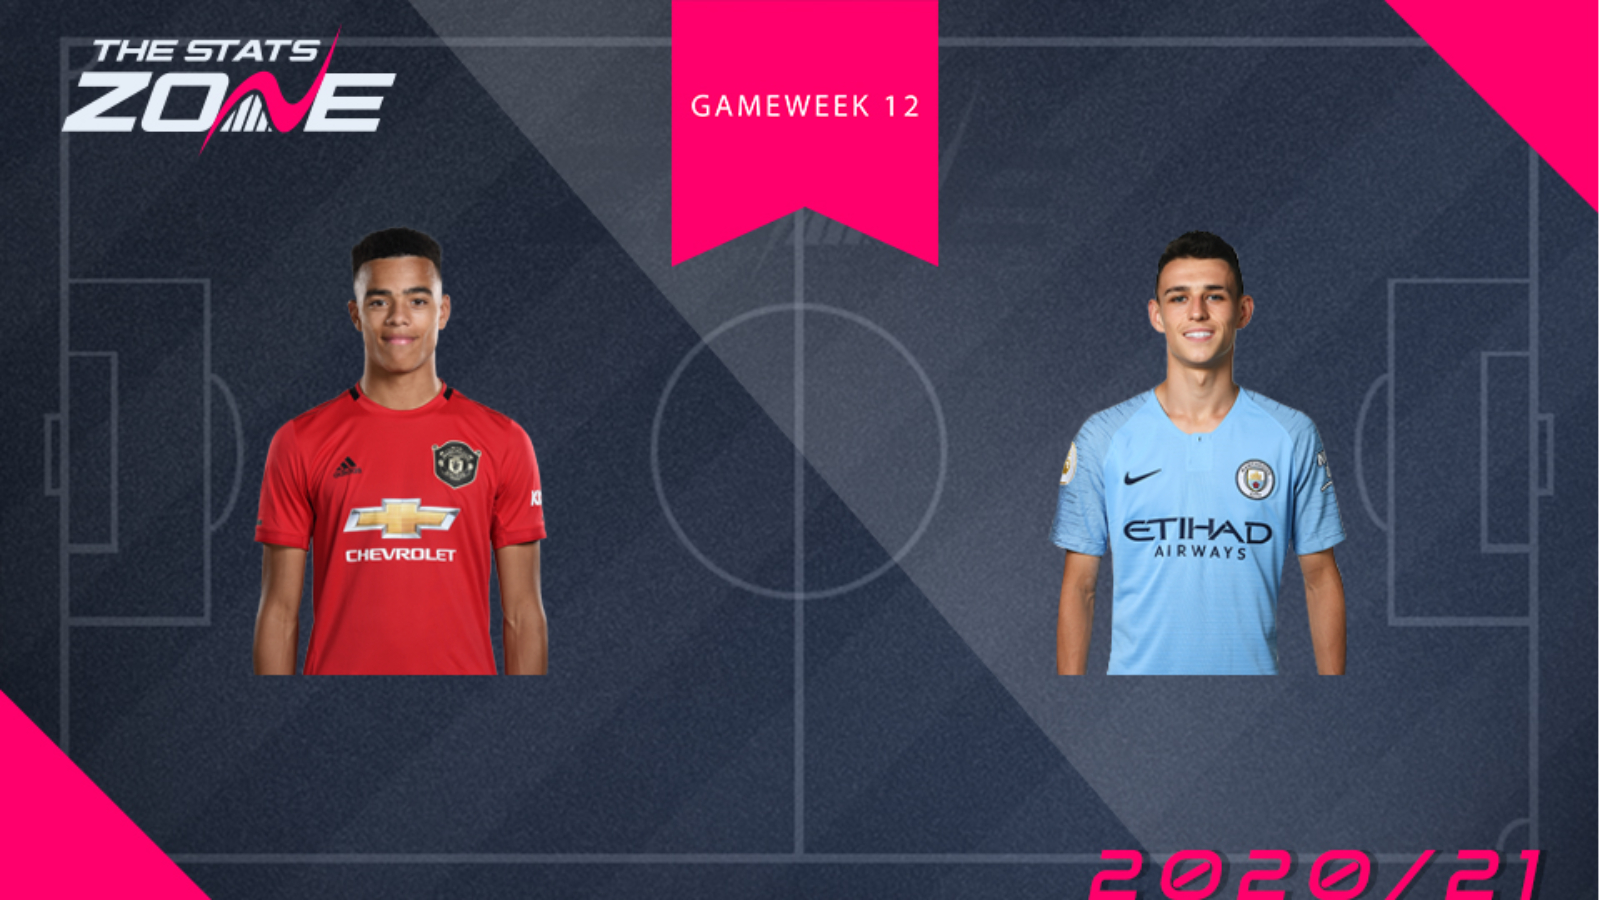 FPL Gameweek 12 – head-to-head comparisons: Mason Greenwood vs Phil Foden -  The Stats Zone